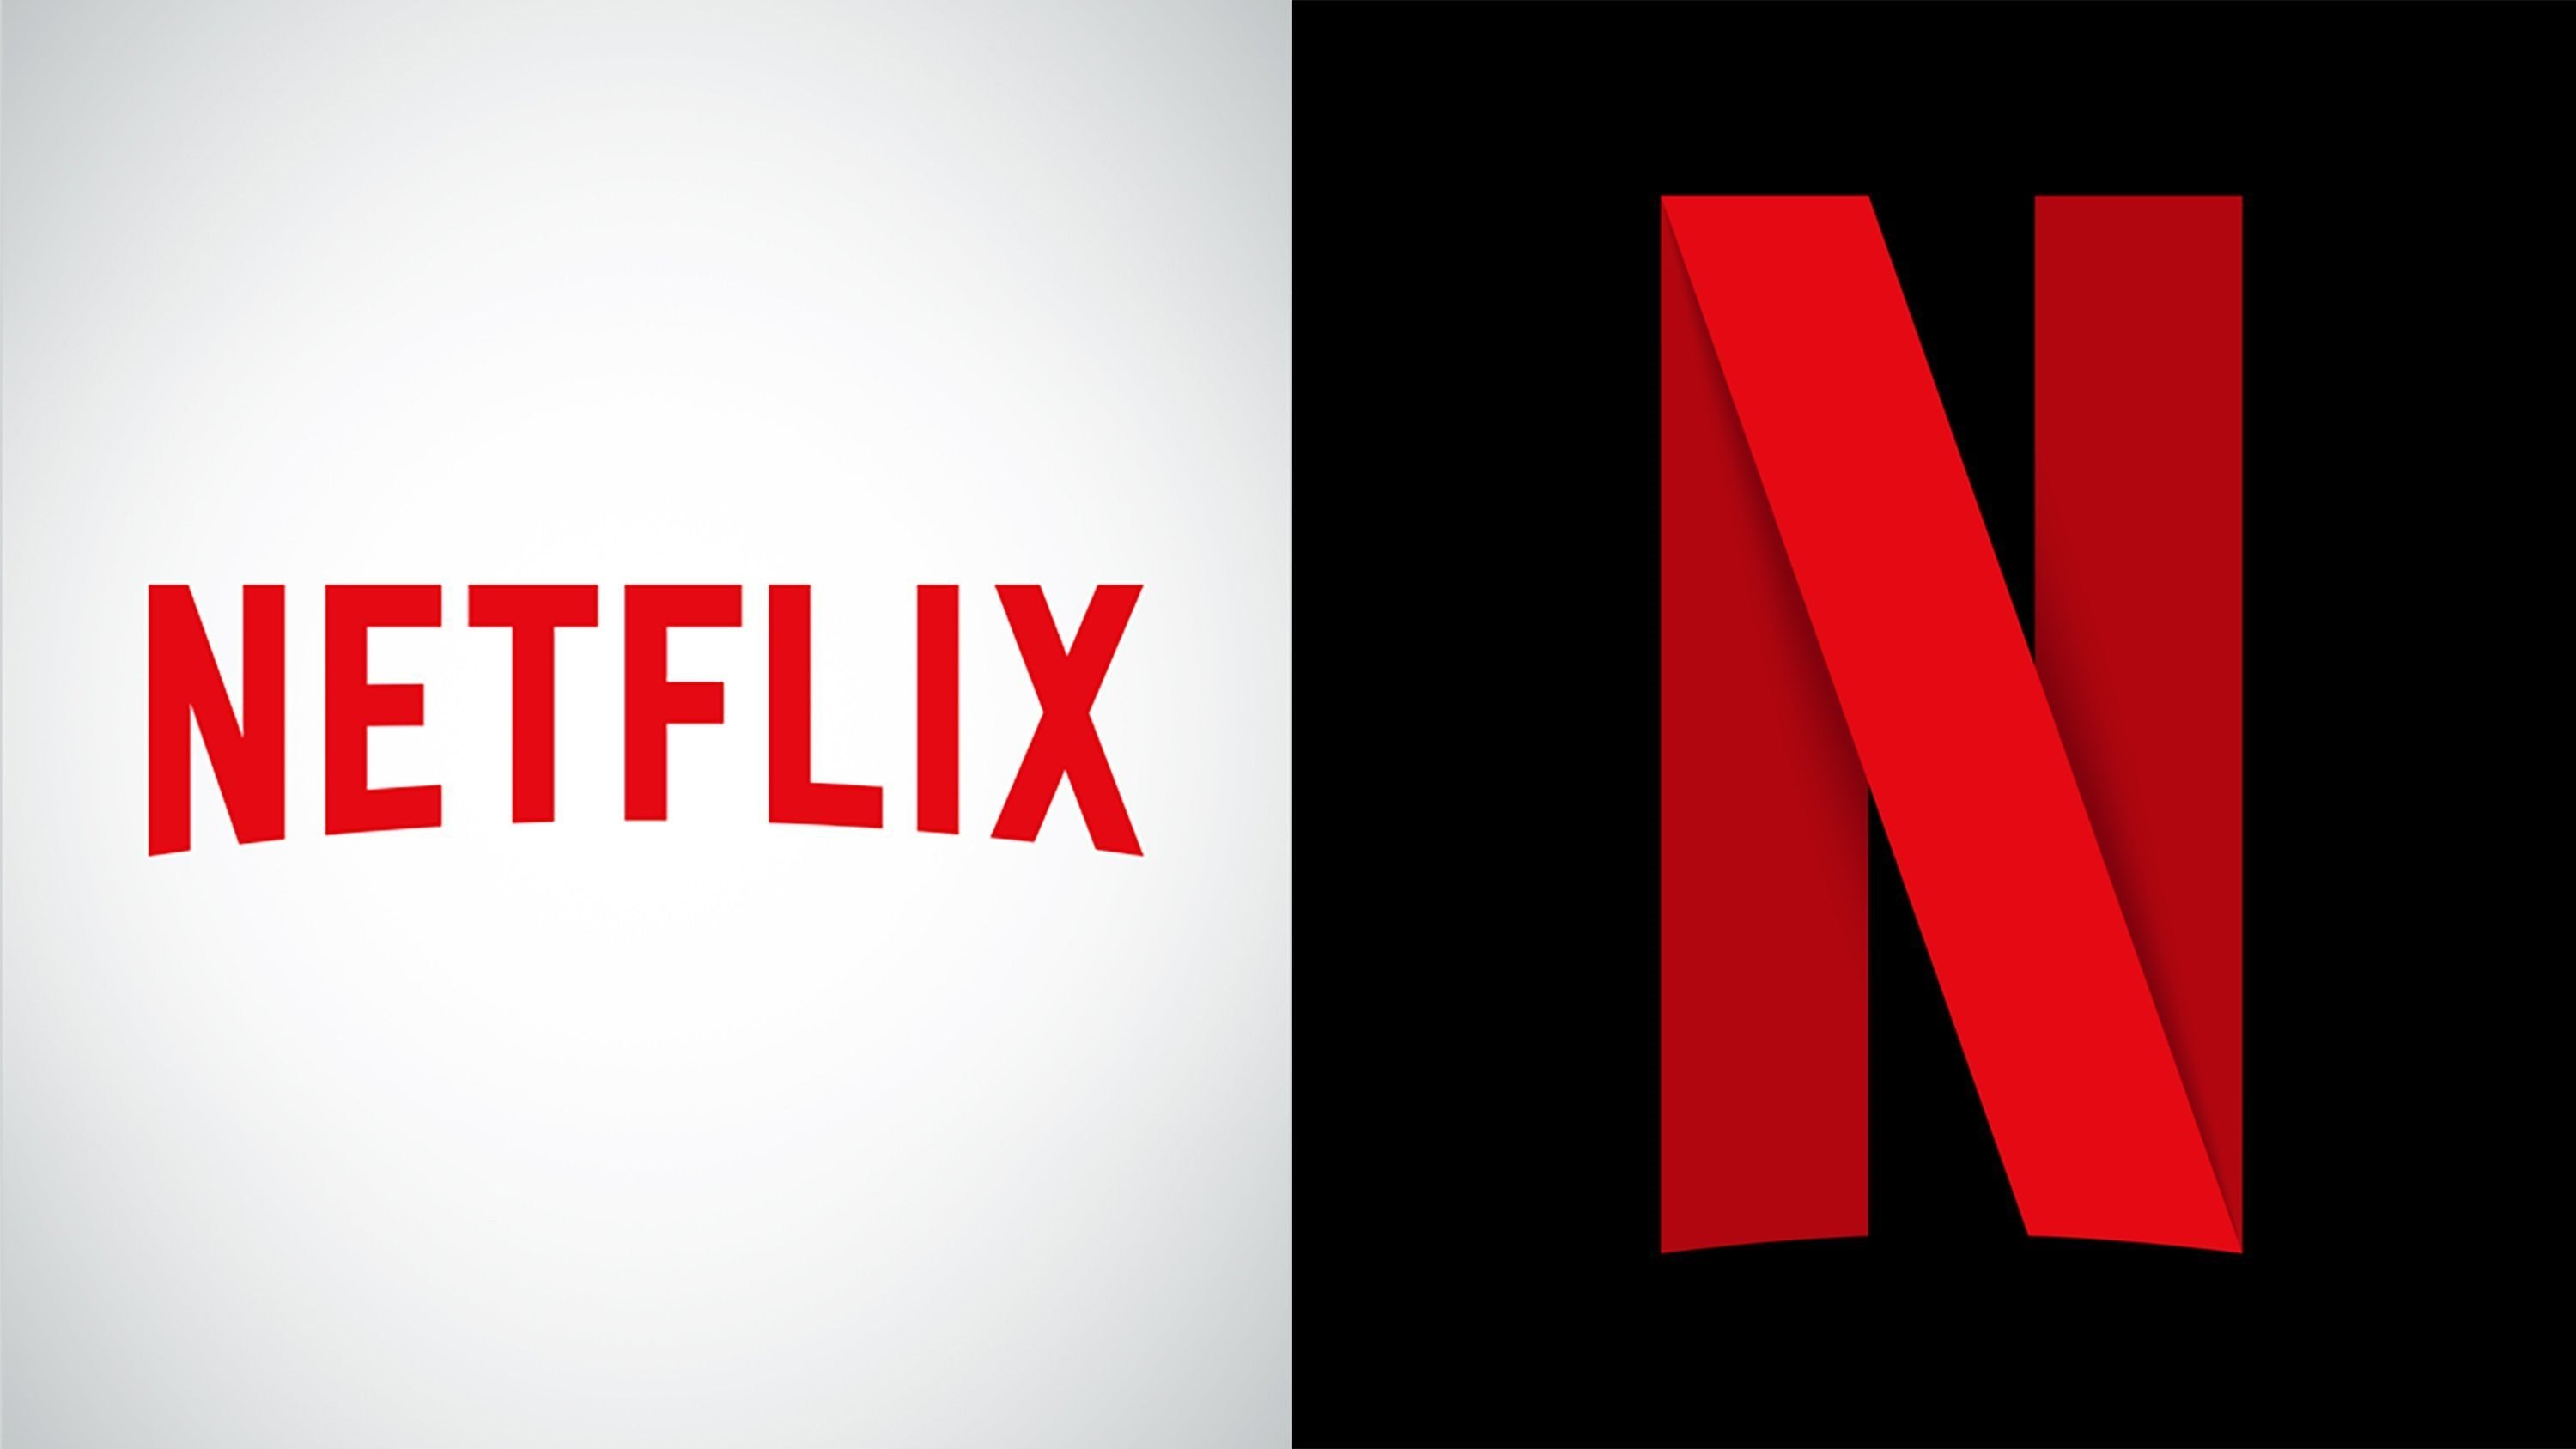 Netflix is rolling out a button for skipping the opening credits